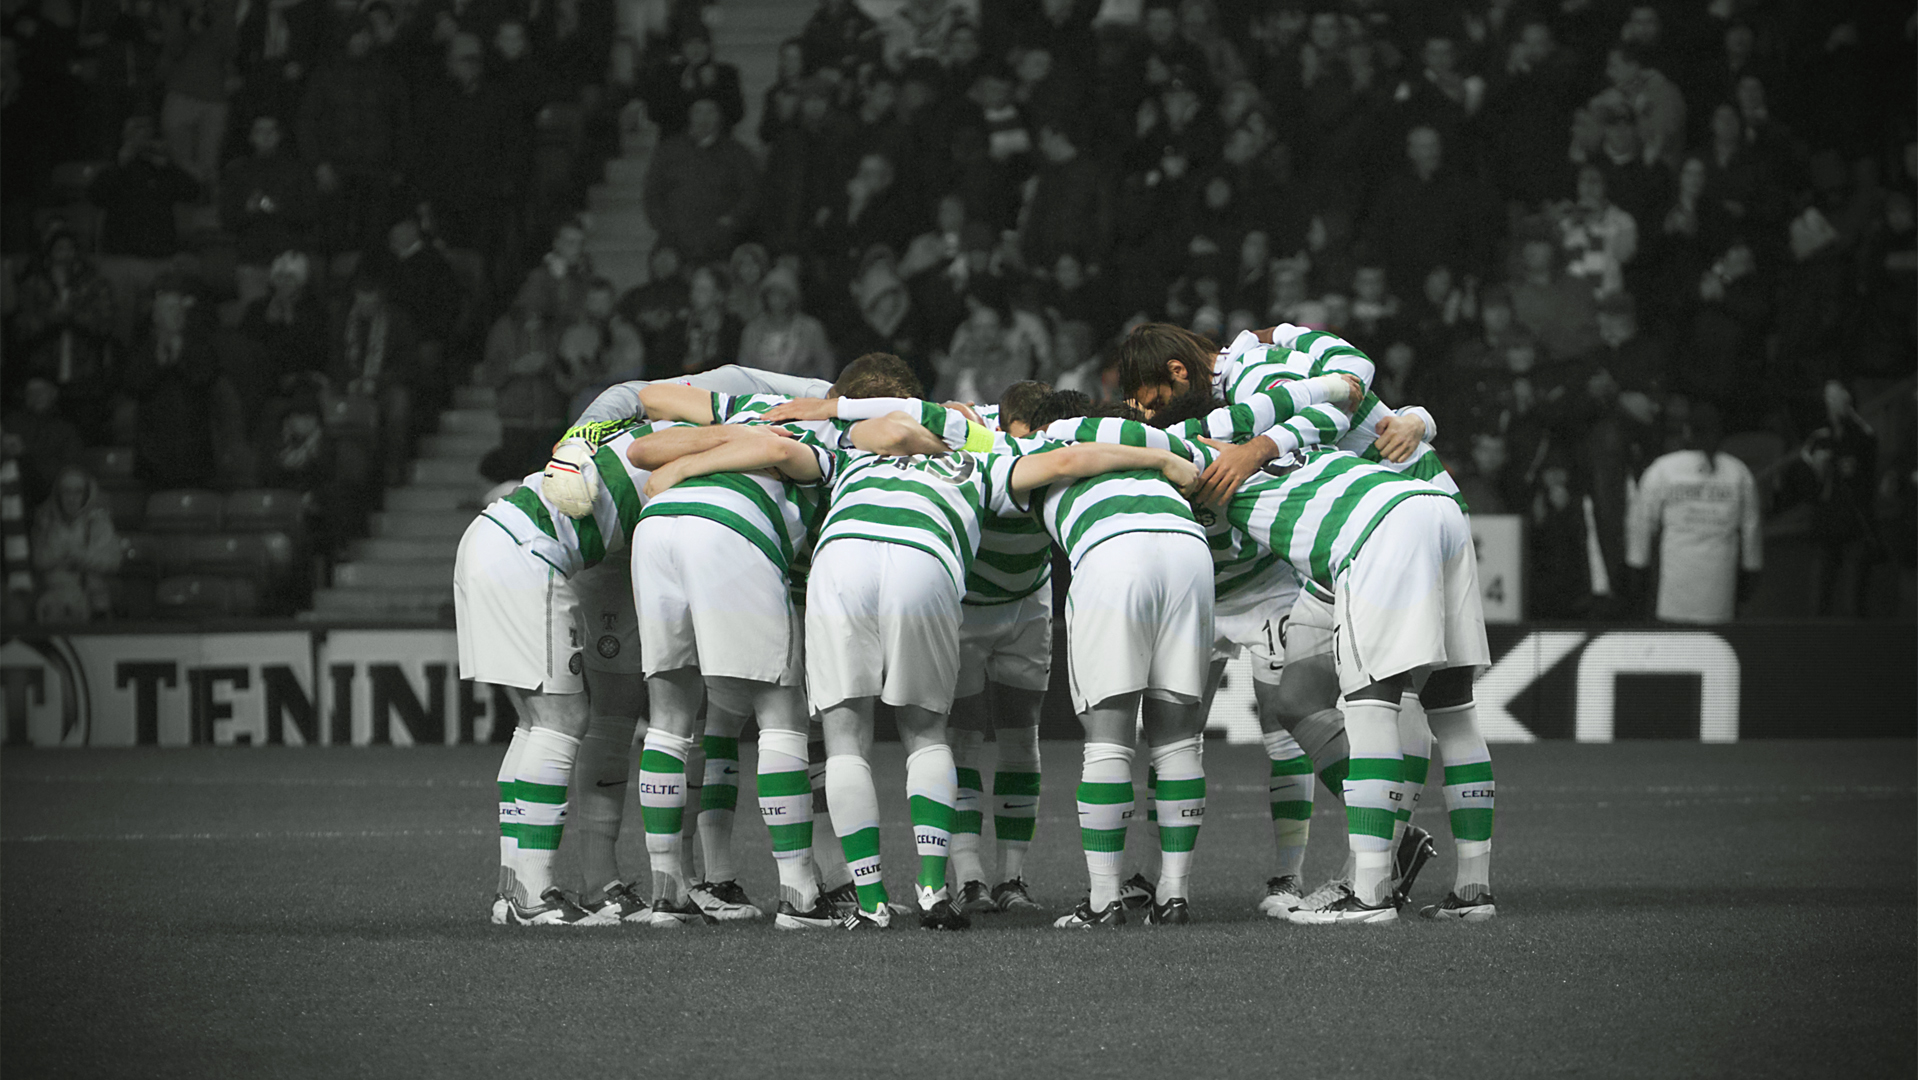 1920x1080 - Celtic F.C. Wallpapers 21